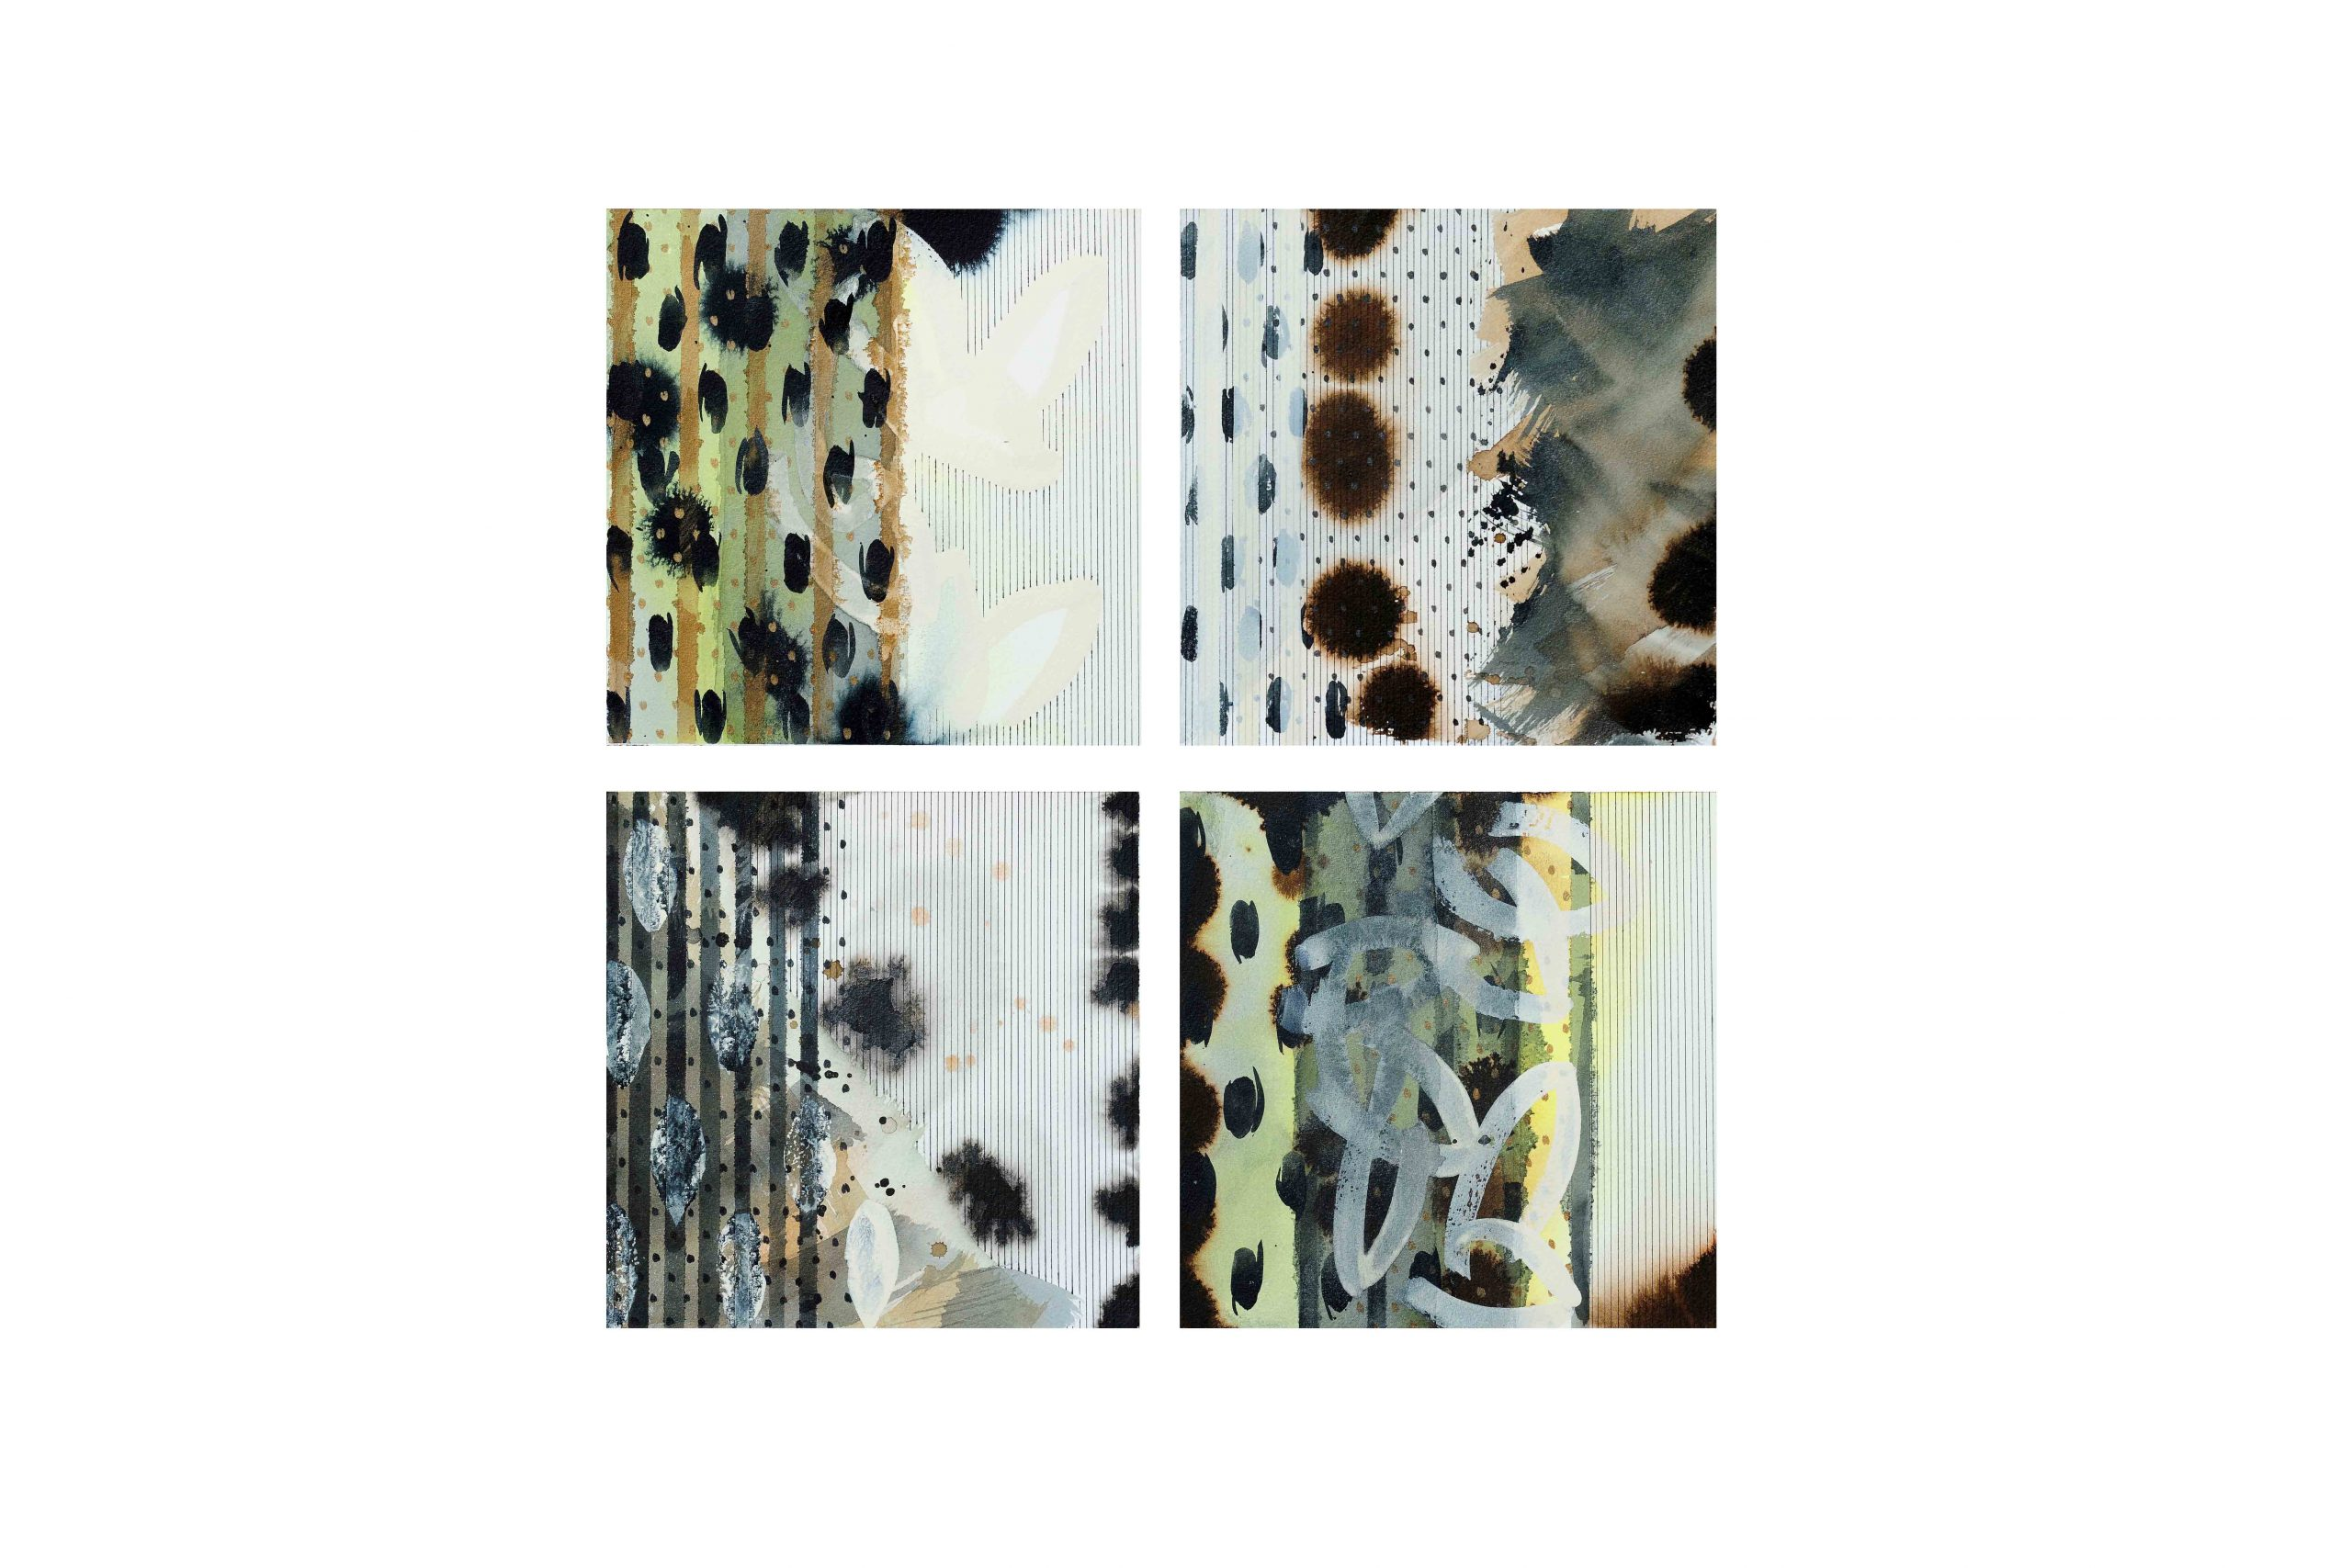 10 x 10 | 13 – 17 – 18 – 19 | mixed media on paper | 2021